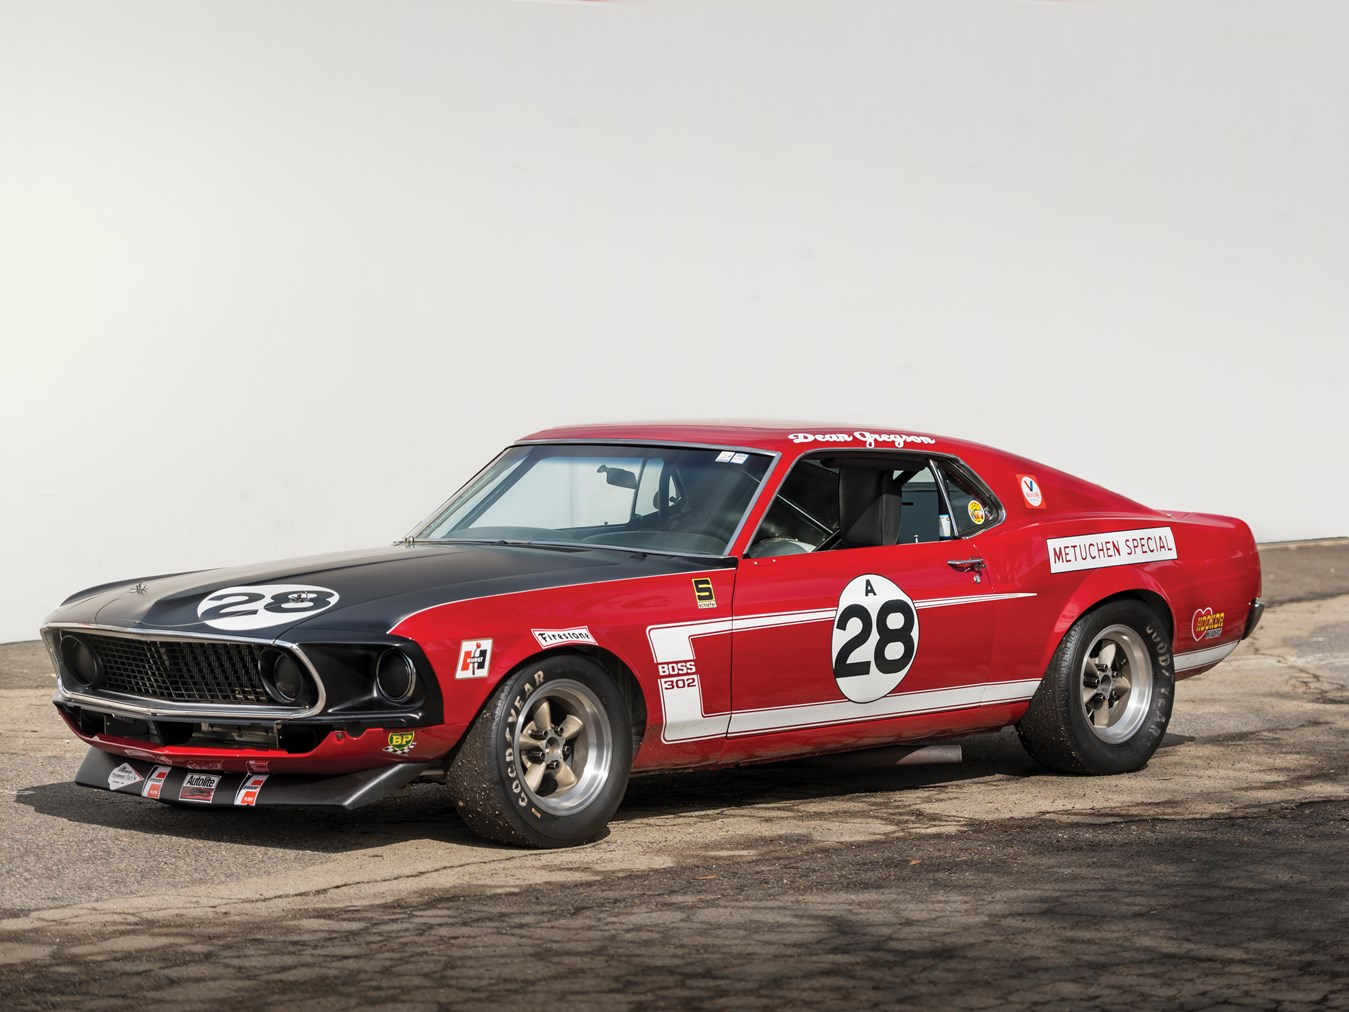 rm sotheby 39 s 1969 tasca ford mustang boss 302 trans am. Black Bedroom Furniture Sets. Home Design Ideas